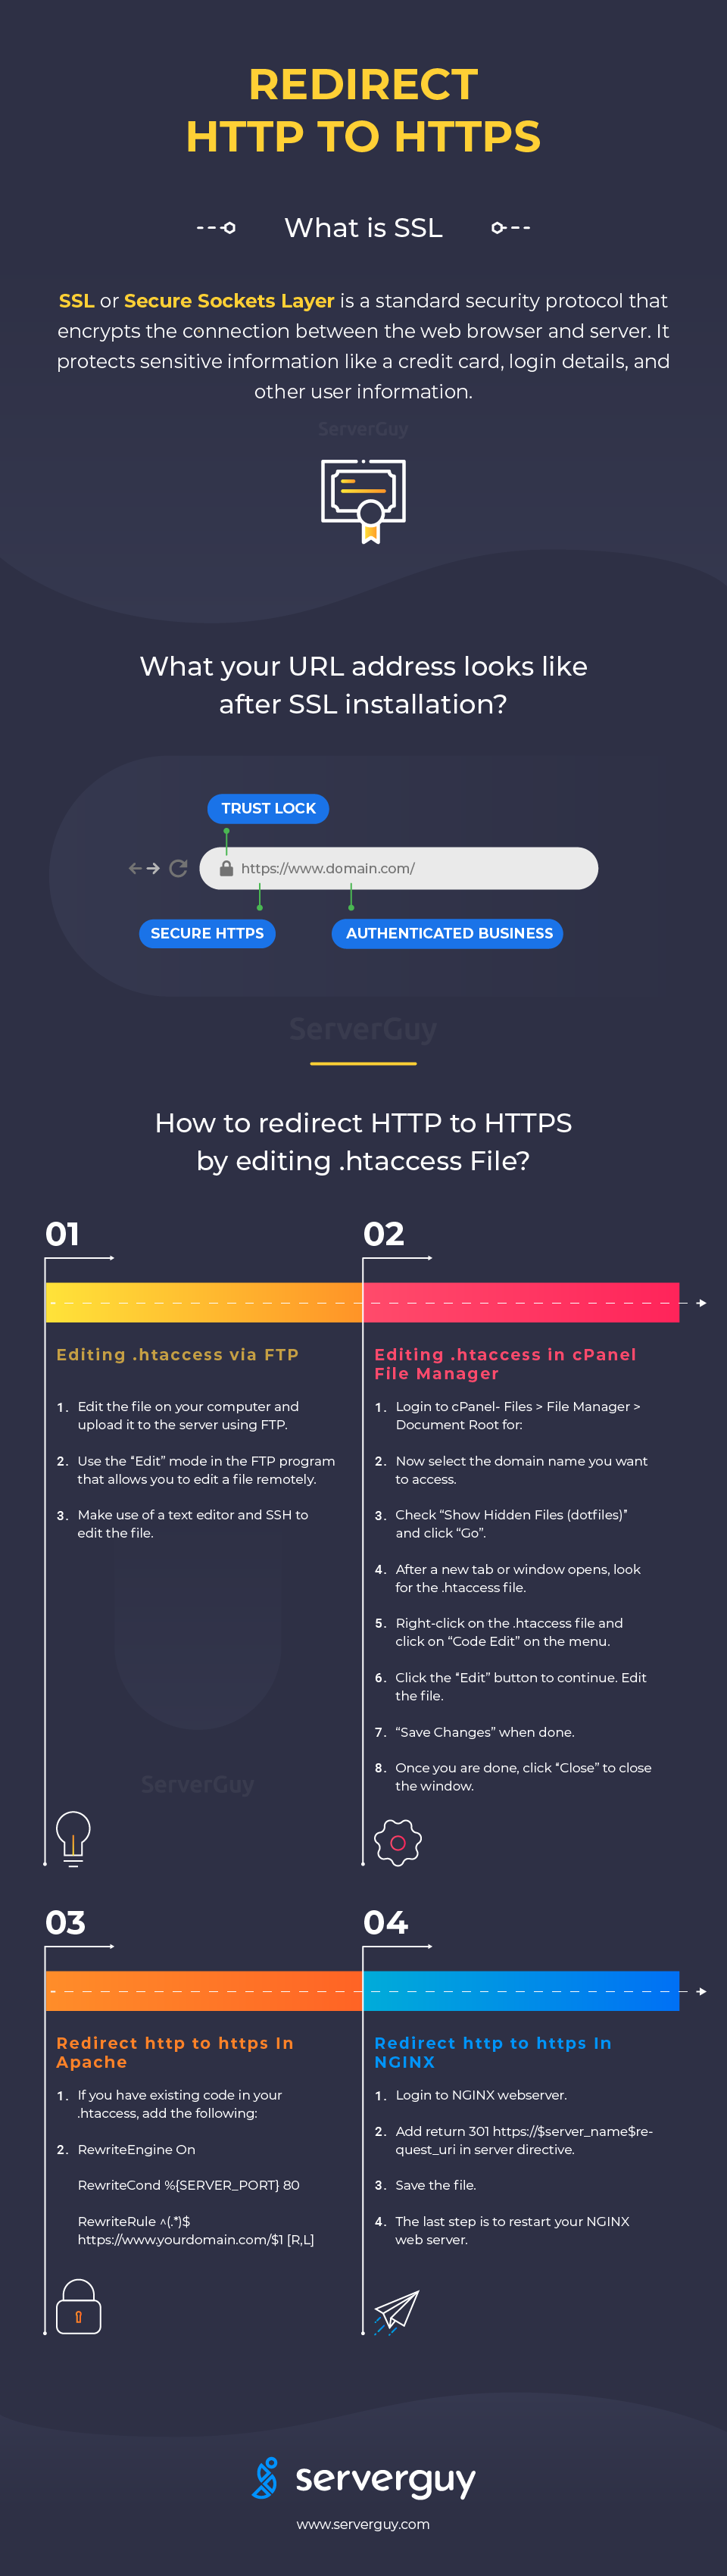 Force Redirect HTTP to HTTPS using htaccess